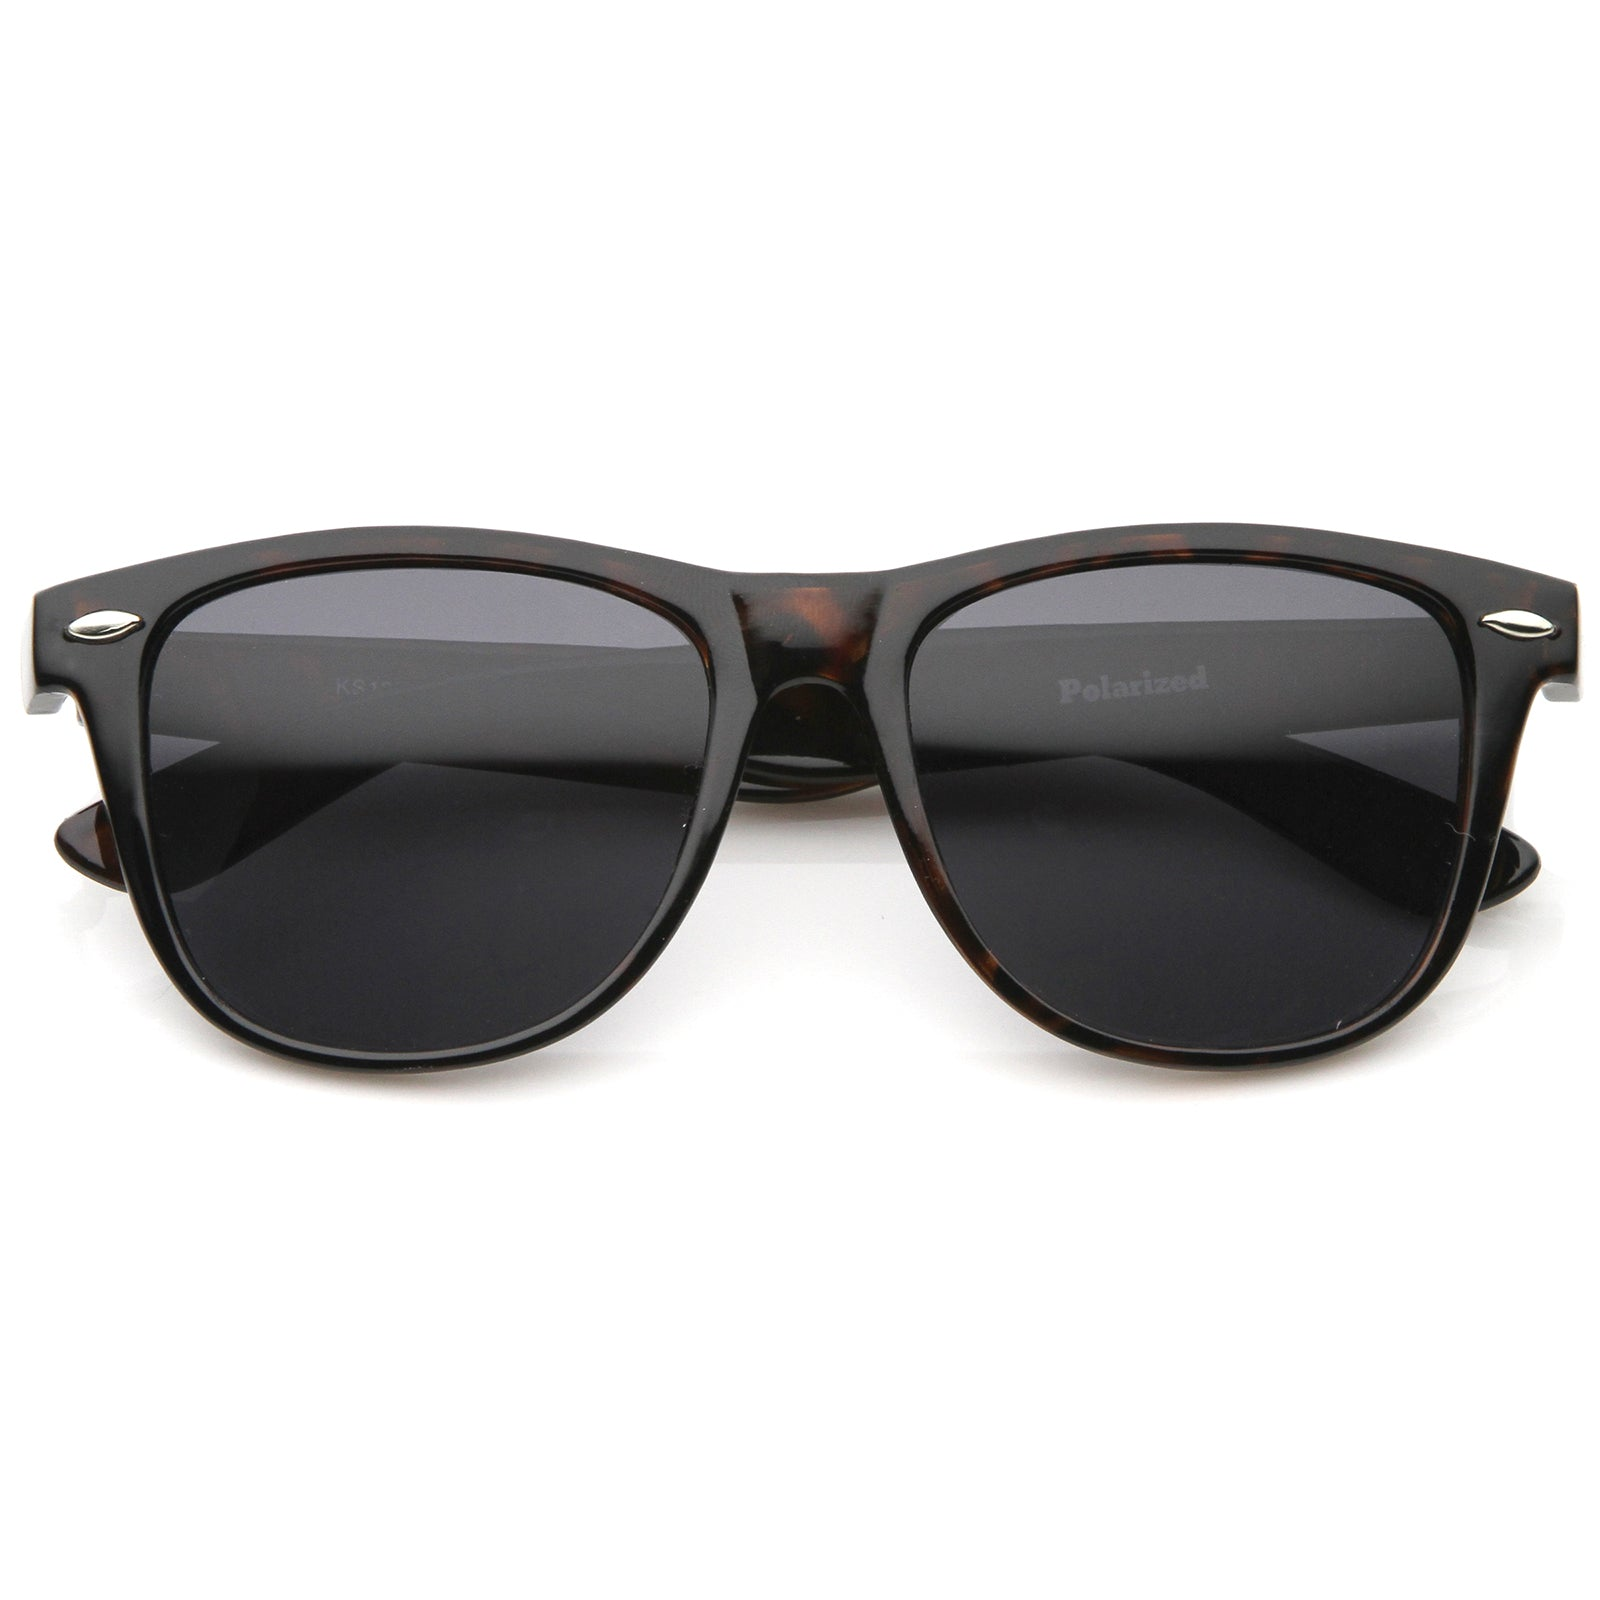 Large Oversize Classic Dark Tinted Lens Horn Rimmed Sunglasses 55mm - sunglass.la - 5